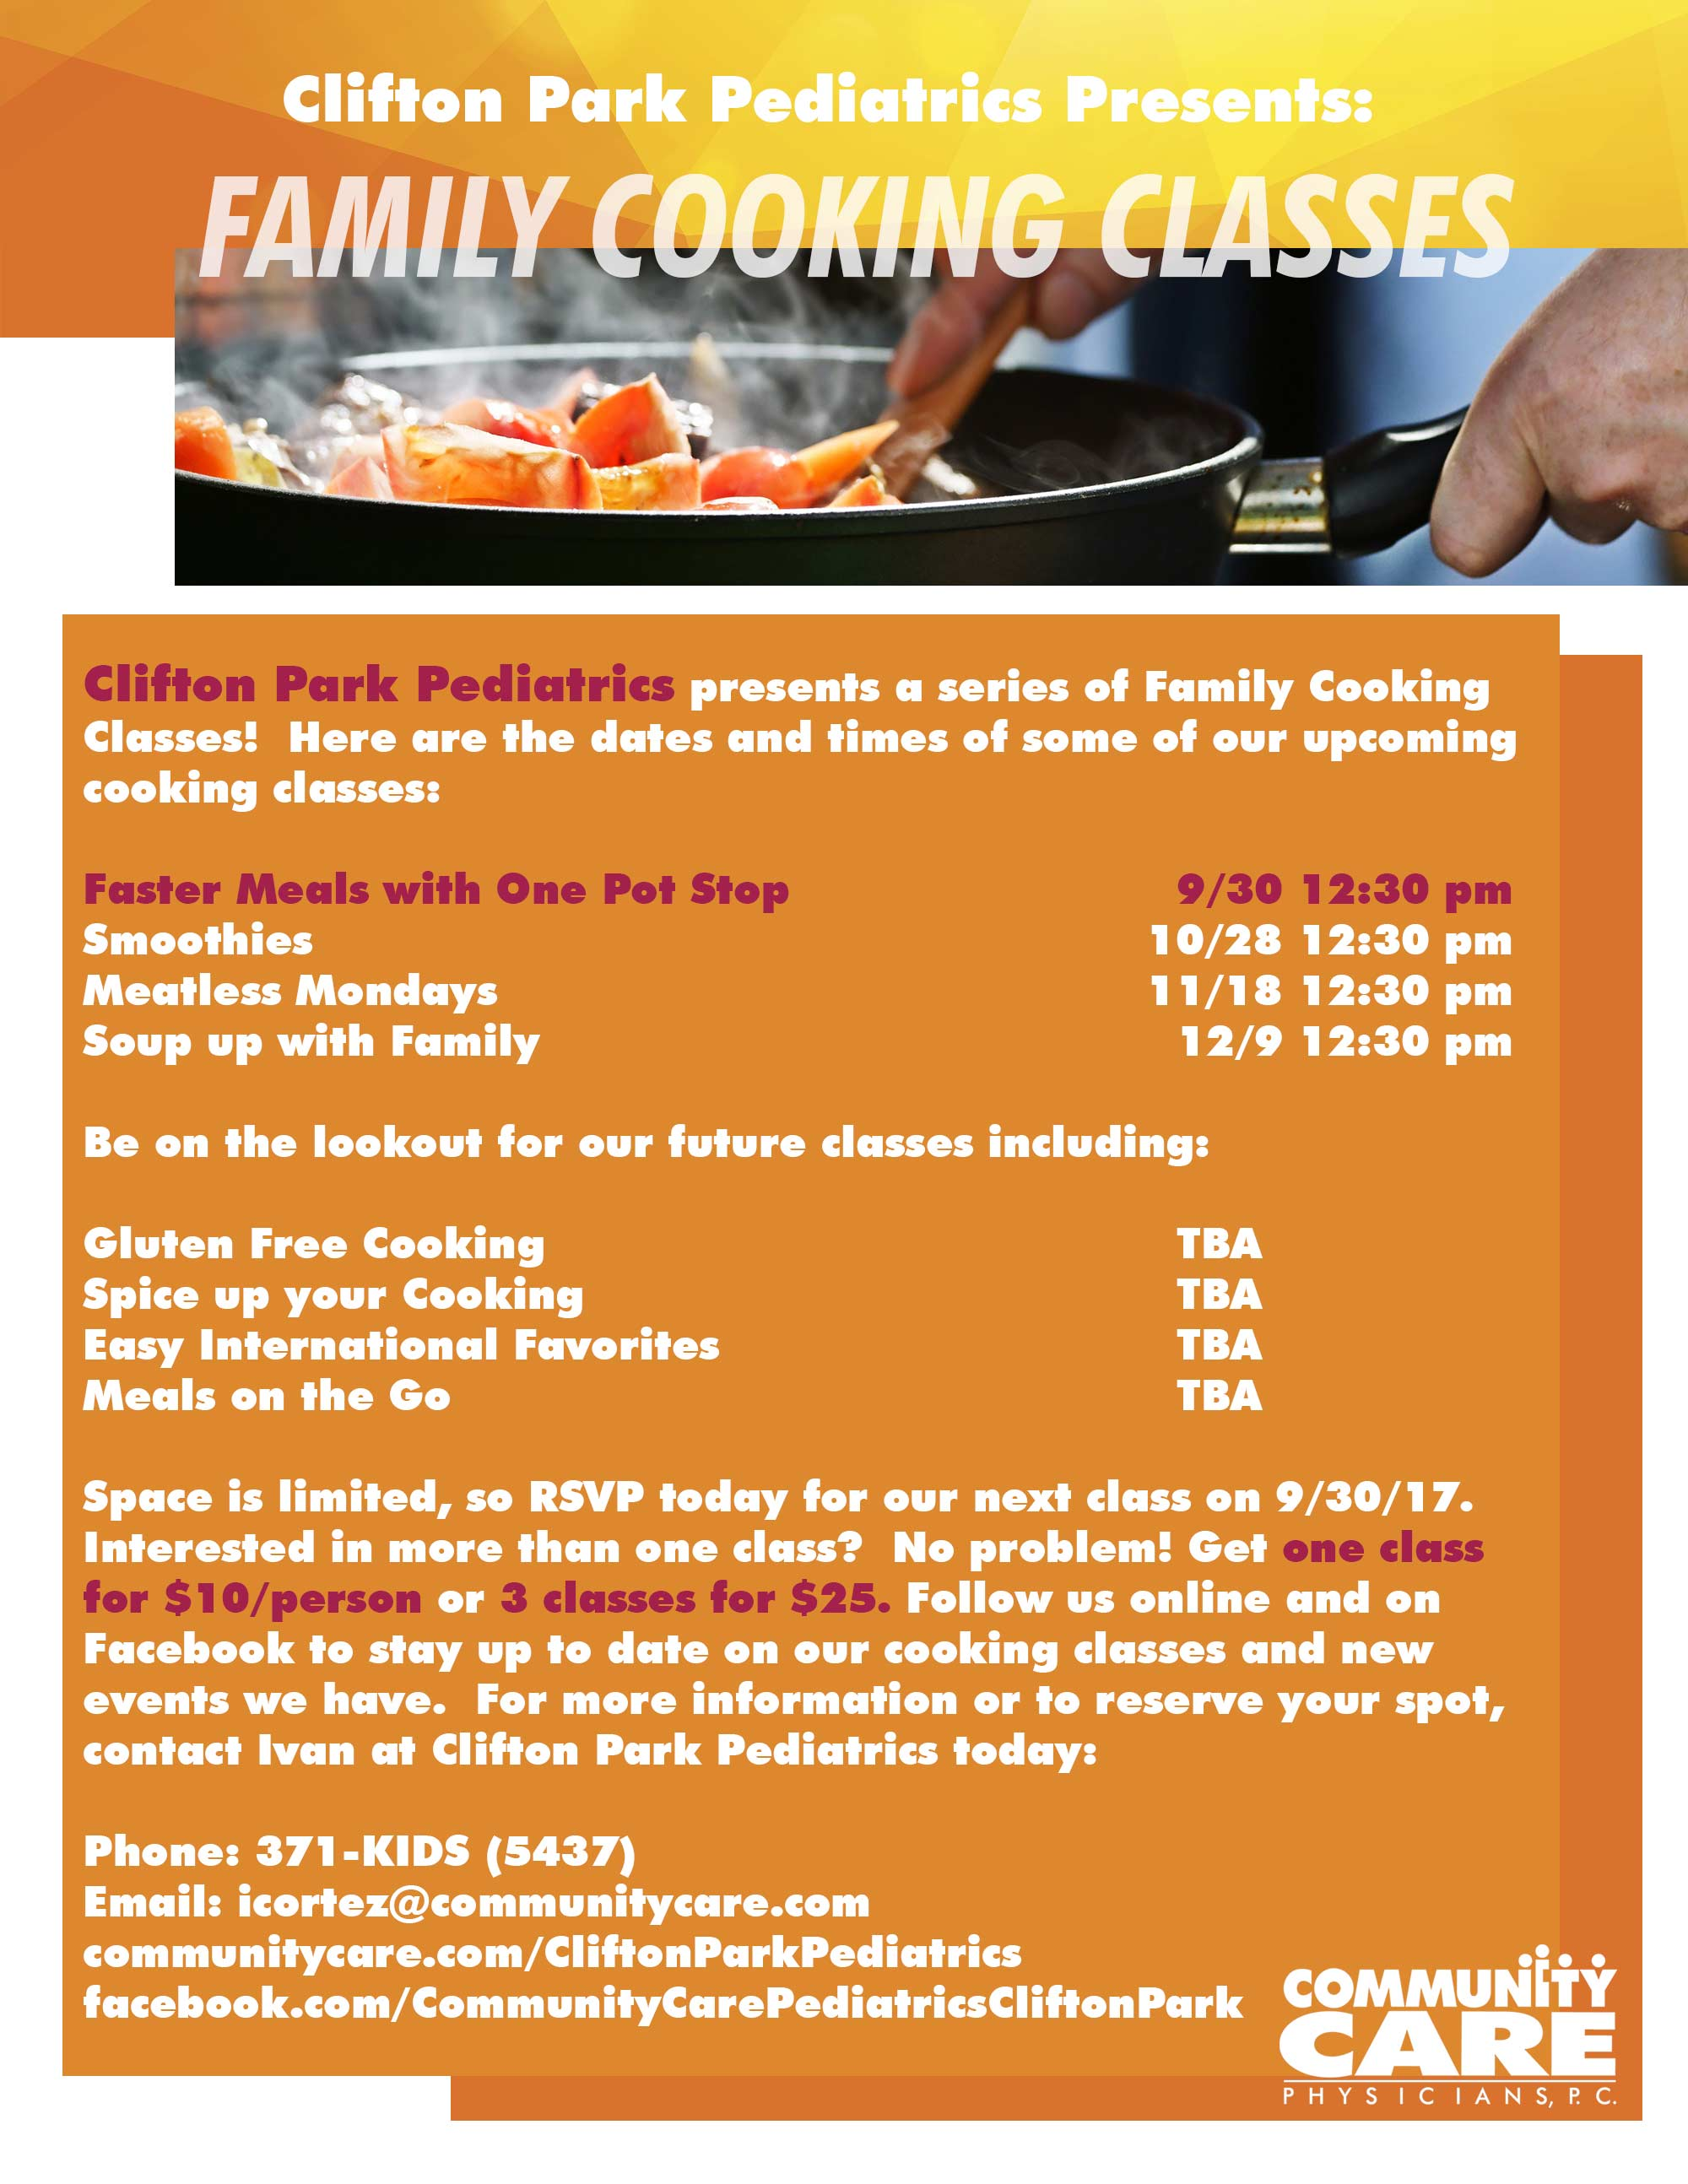 Clifton Park Pediatrics presents: Family Cooking Classes